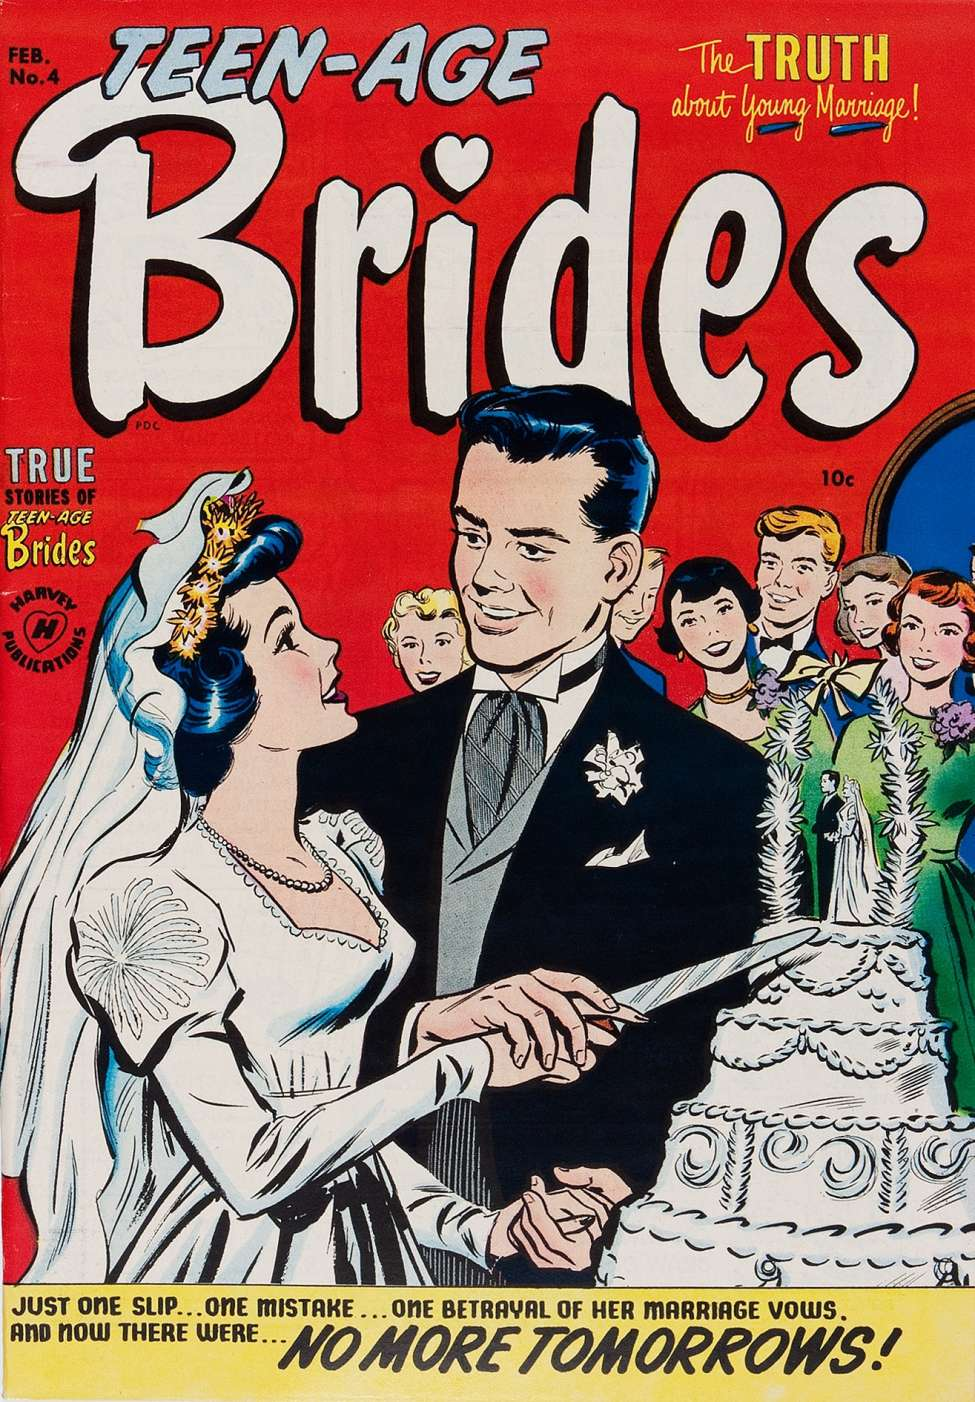 Comic Book Cover For Teen-Age Brides #4 - Version 2